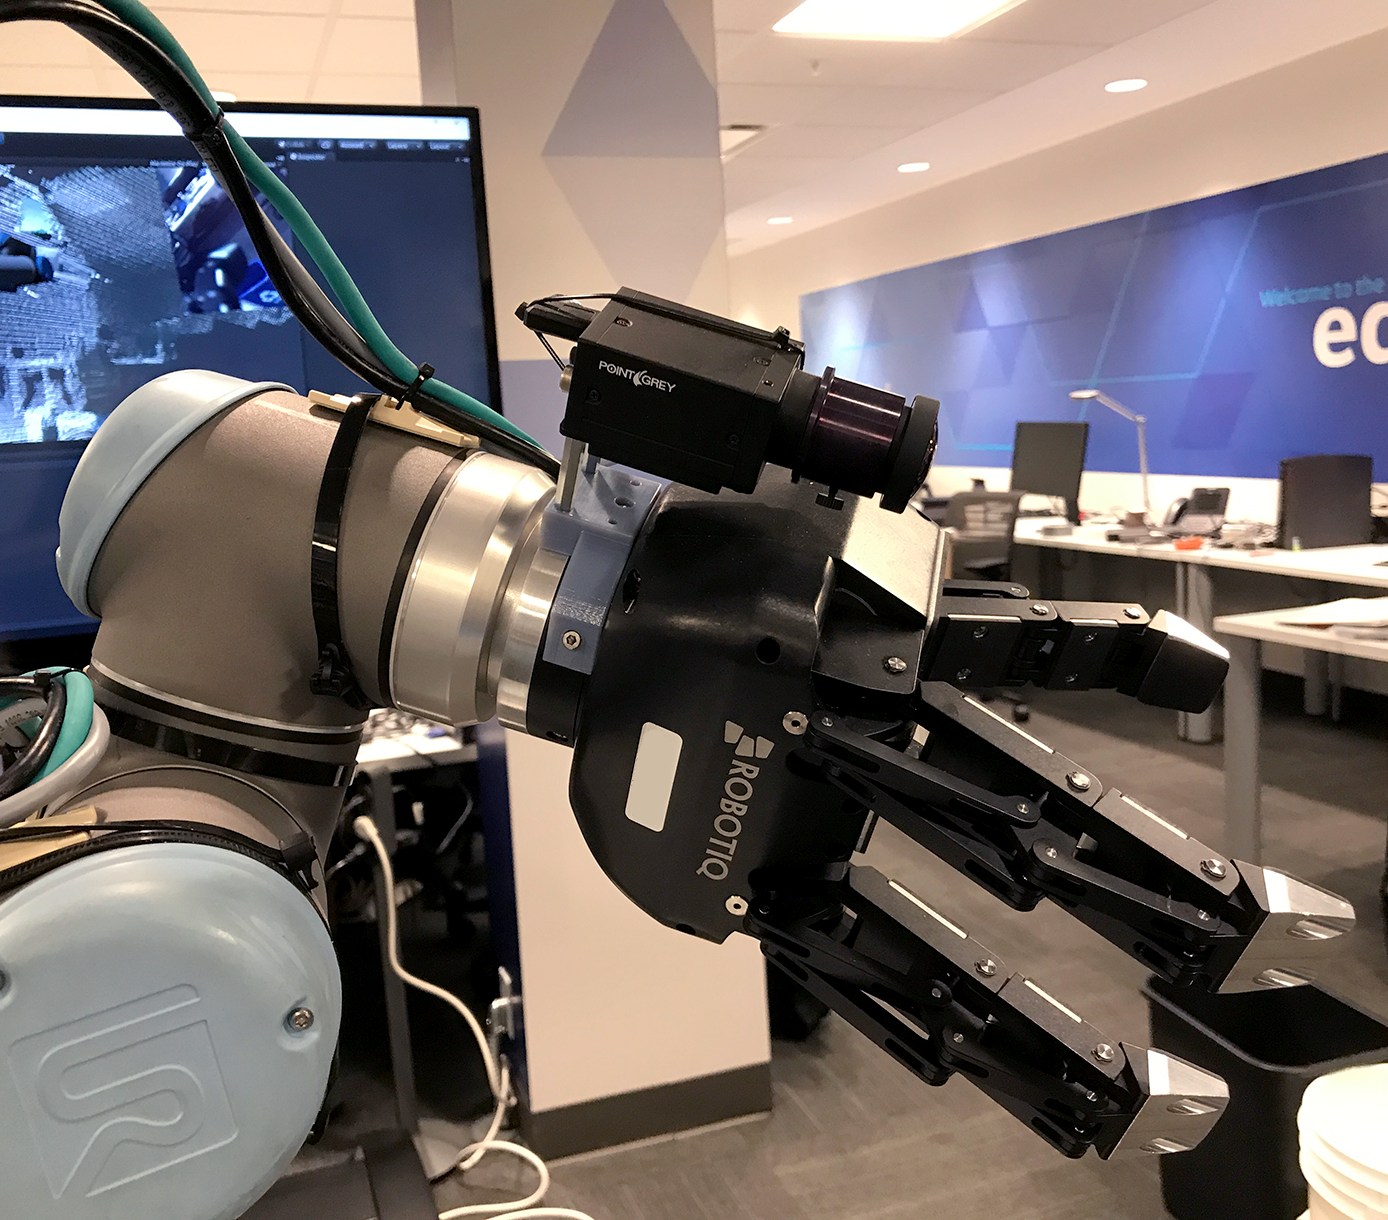 IoT Connected Robot VR